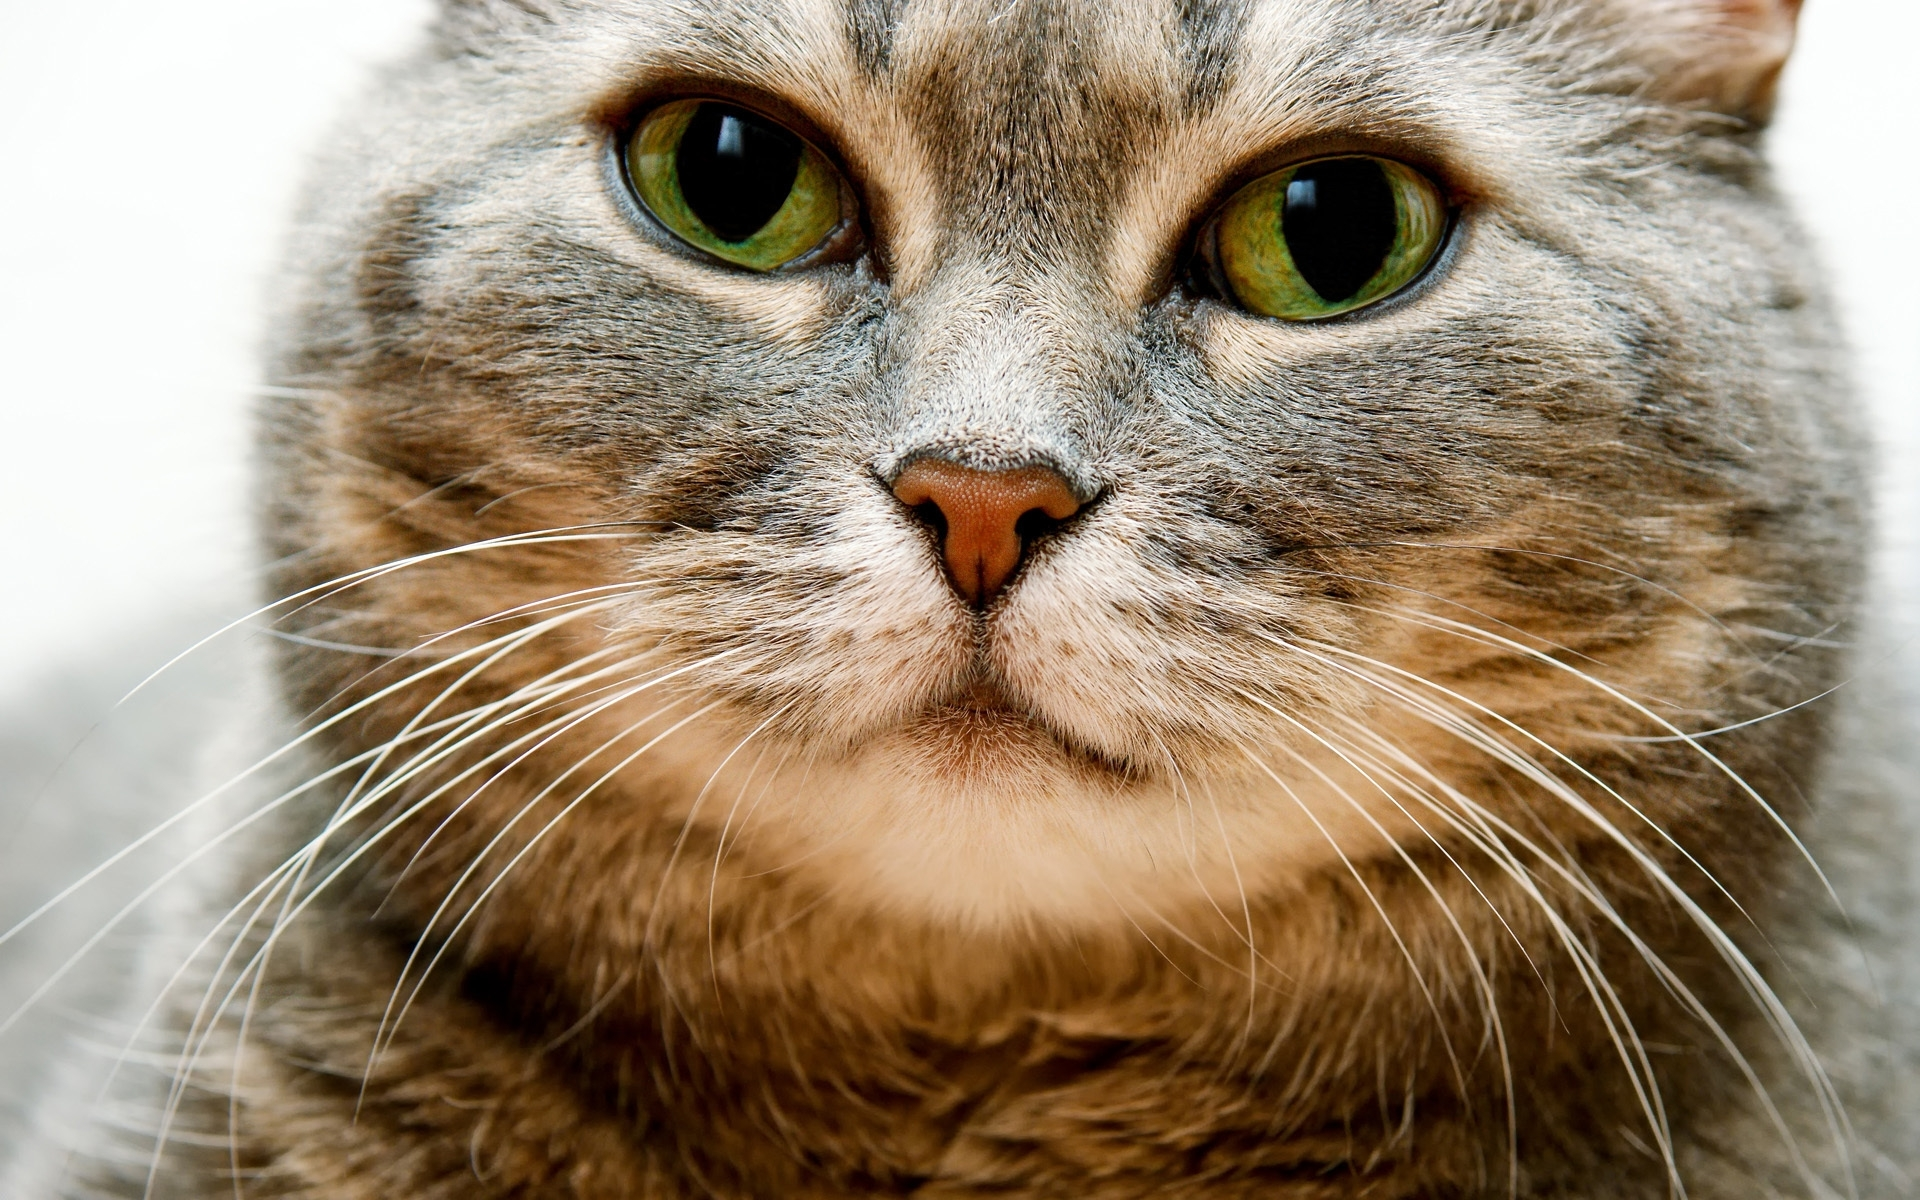 50107 download wallpaper Animals, Cats screensavers and pictures for free